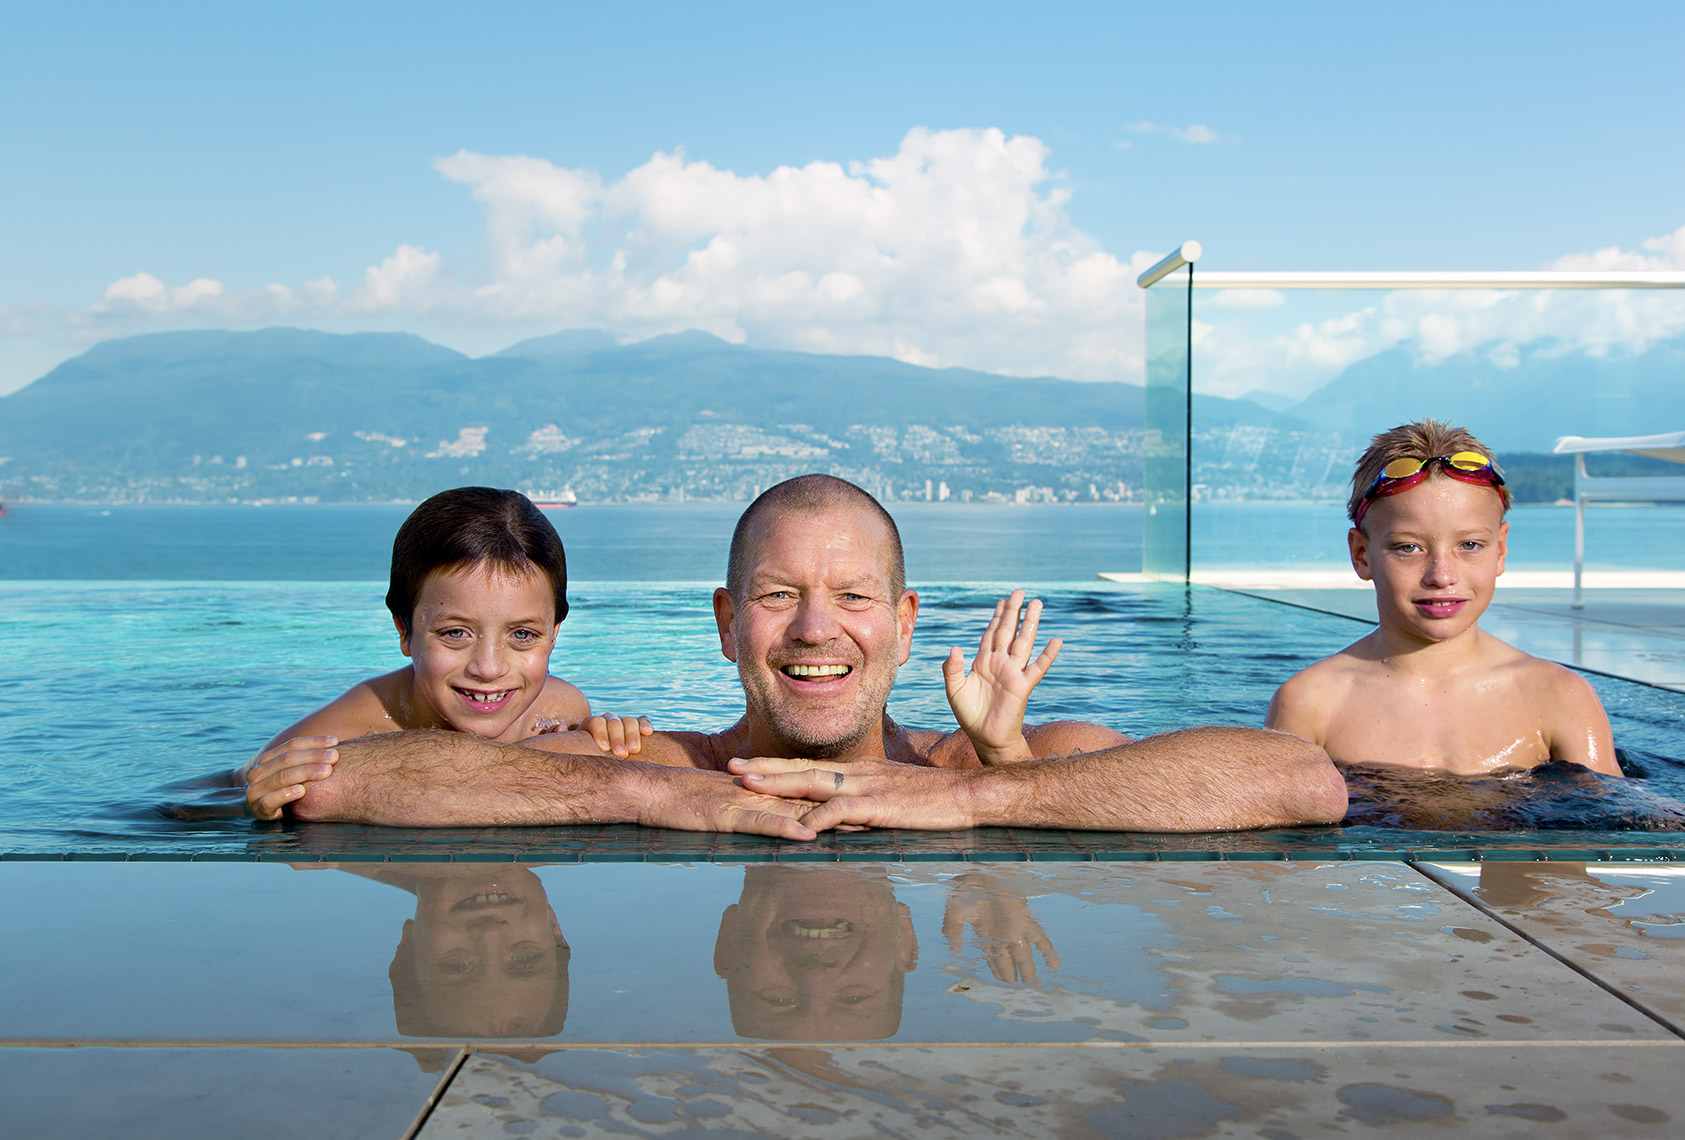 Chip_Wilson_POOL_WEB